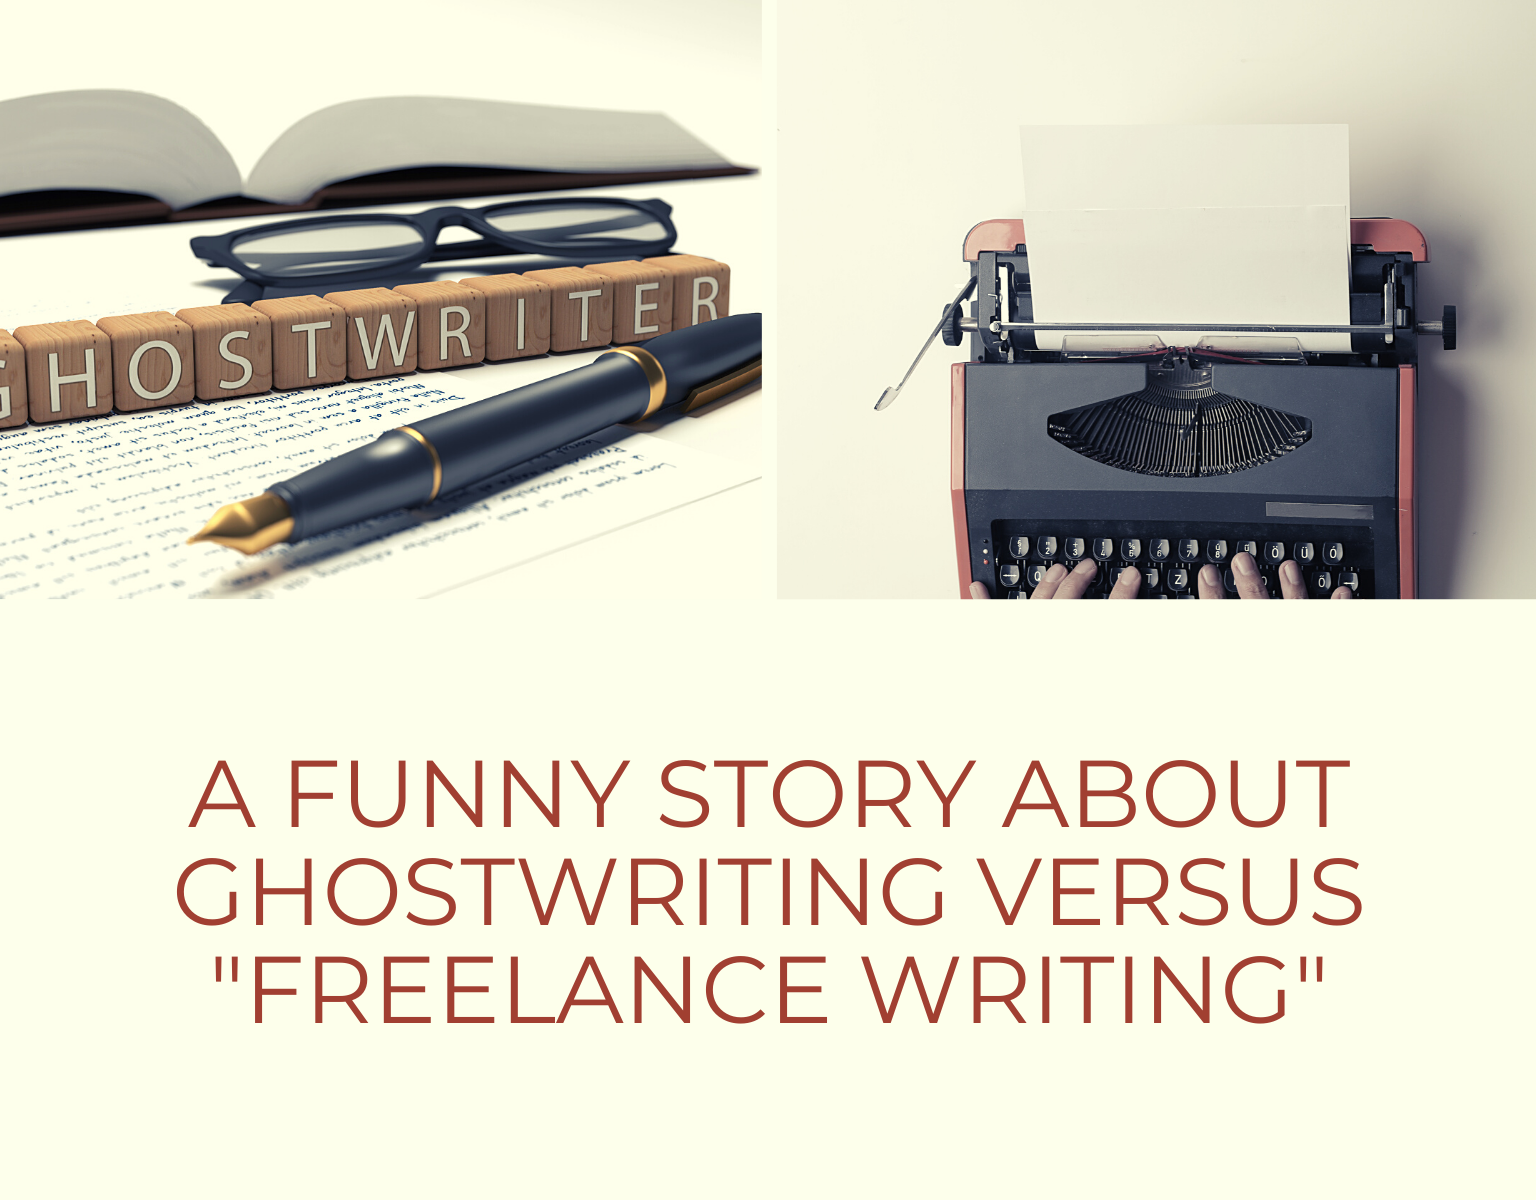 A Funny Story about Ghostwriting Versus Freelance Writing